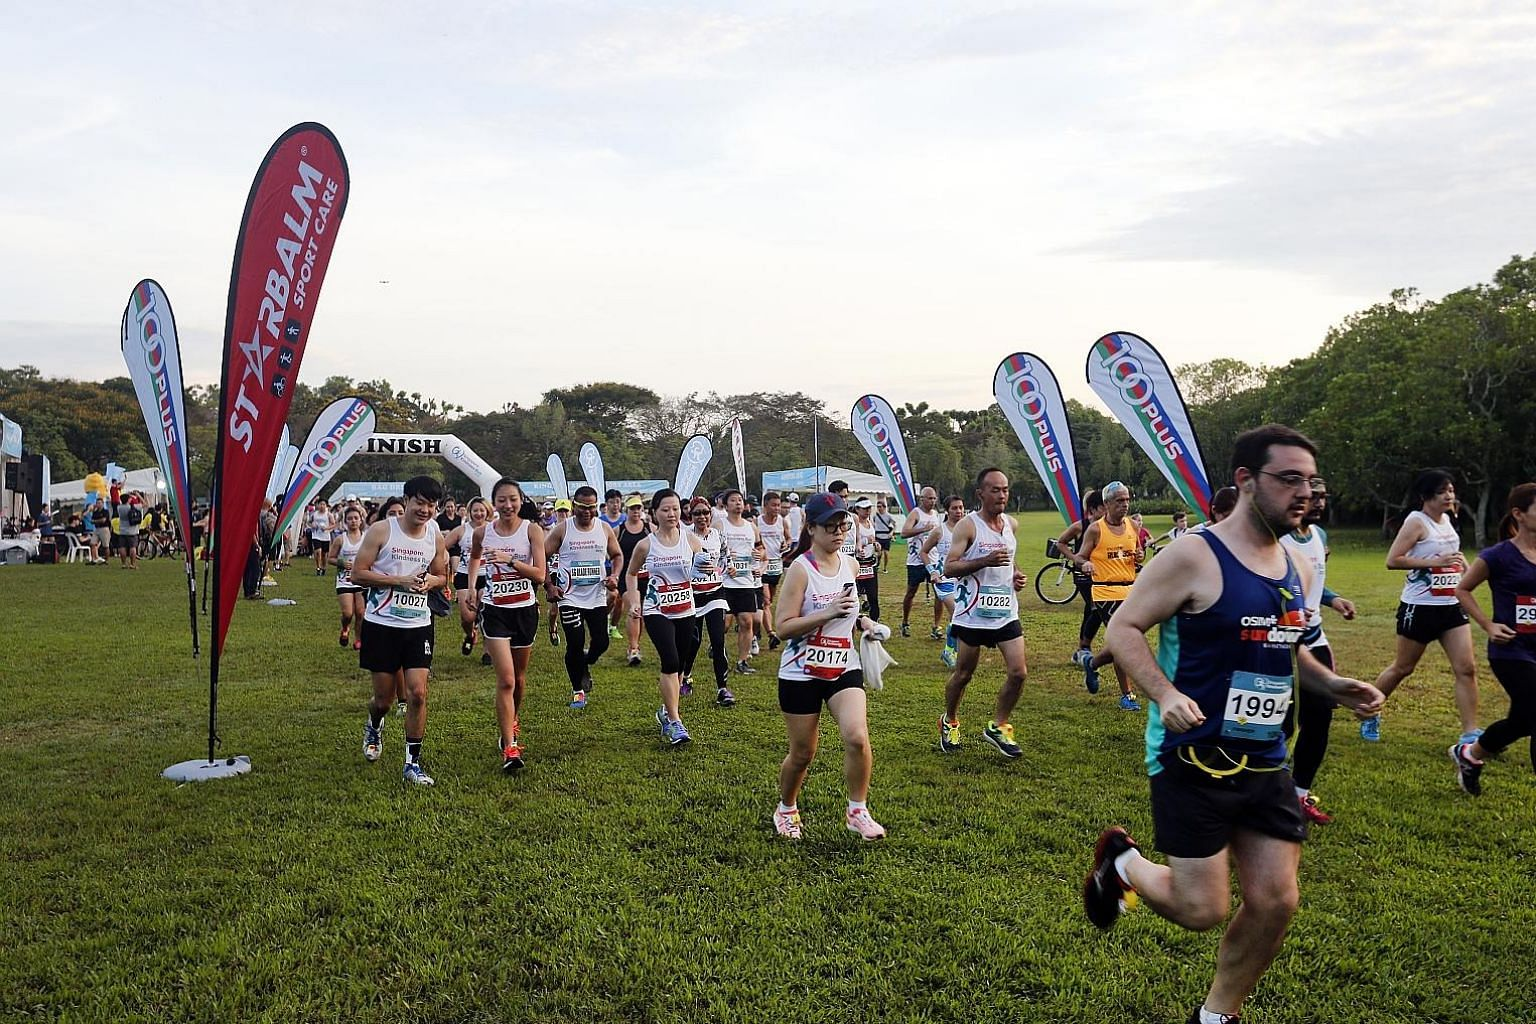 Participants in the first Singapore Kindness Run at Pasir Ris Park yesterday. During the event, 15 representatives of organisers Singapore Kindness Movement and Runners' Heart-Reach ran with participants to remind them about the tips, including keepi